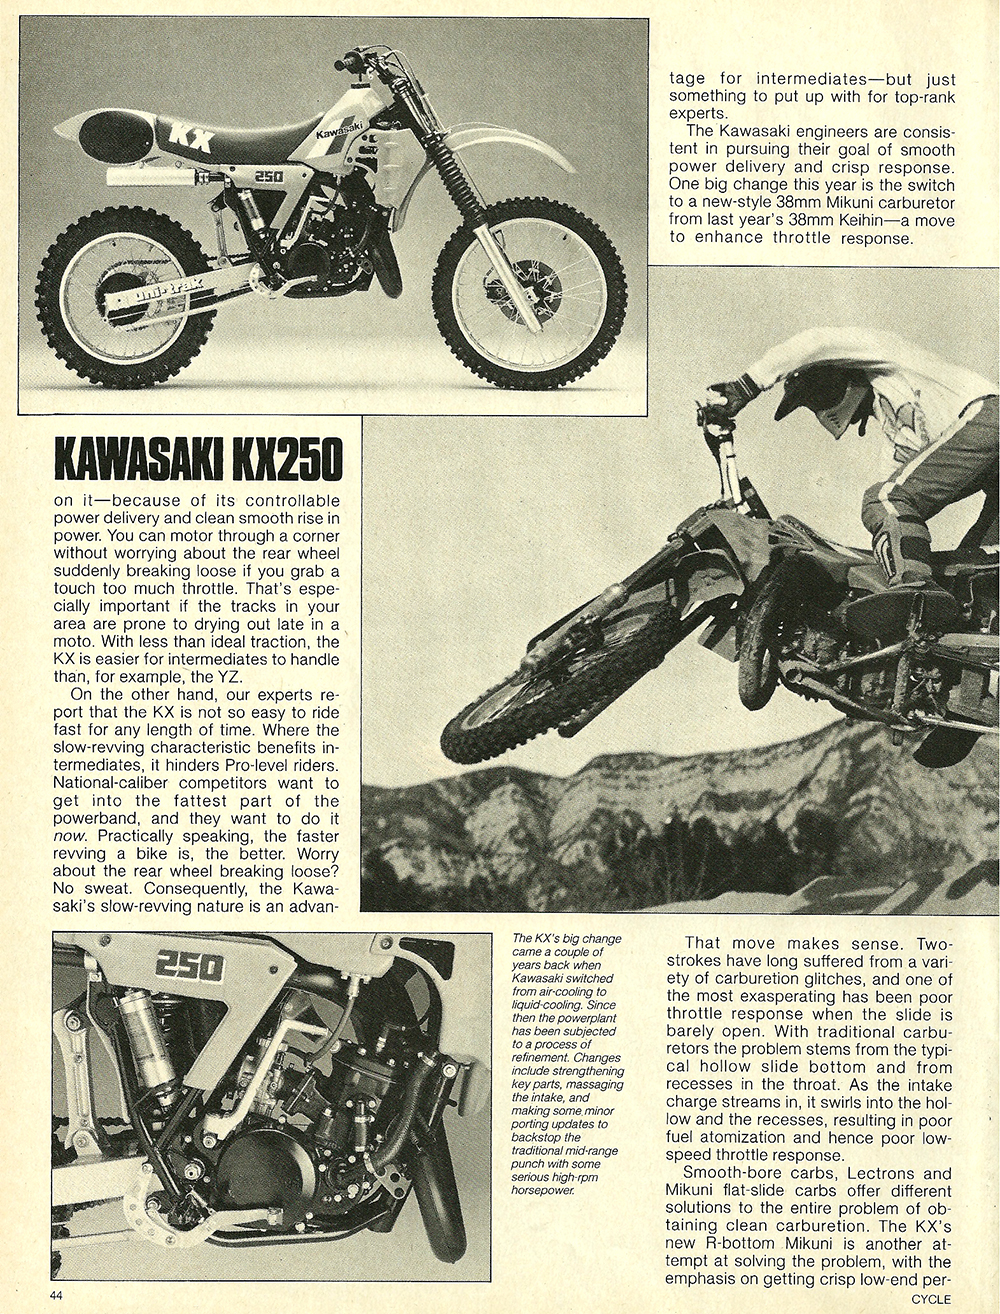 1984 Kawasaki KX250 road test 3.jpg